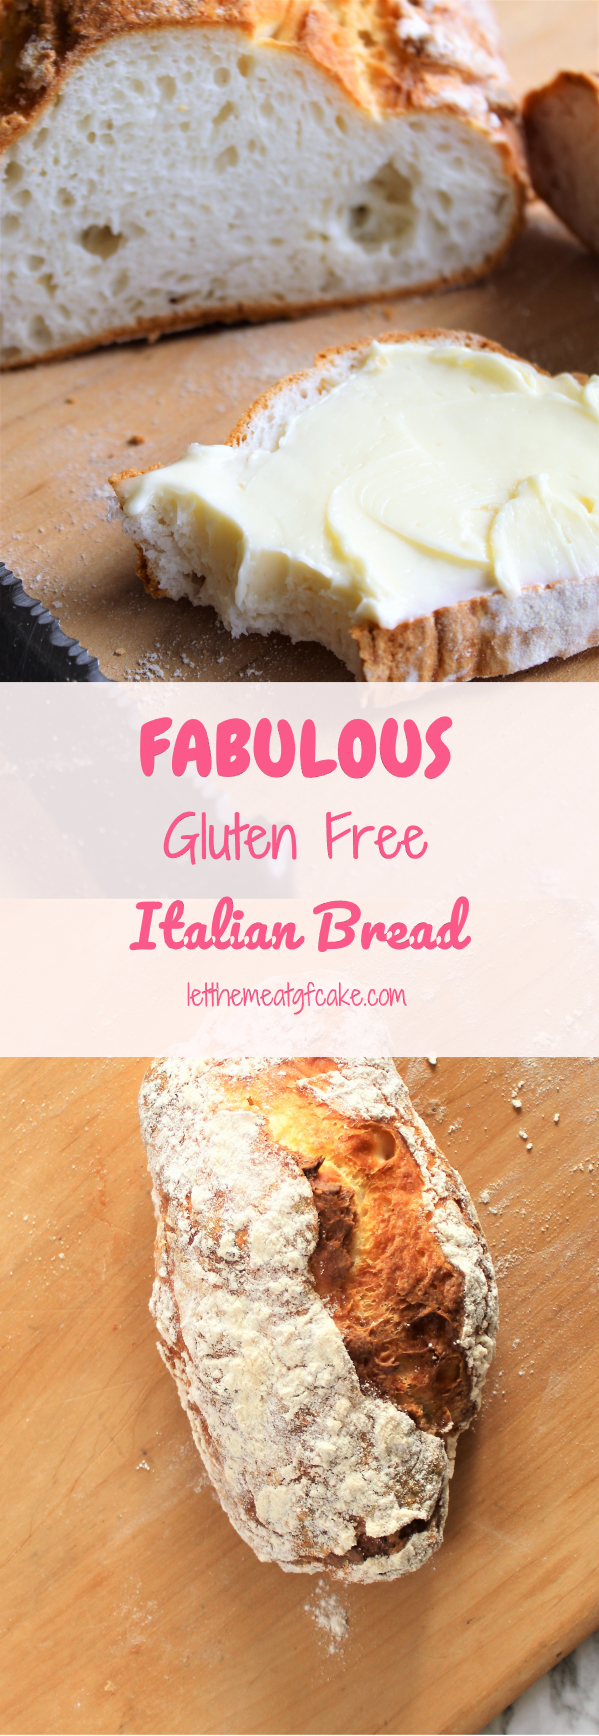 Fabulous Gluten Free Italian Bread This FABULOUS gluten free Italian-American style bread is so freaking good! It's soft and fluffy with a thin soft crust that's just absolute perfection 🙂